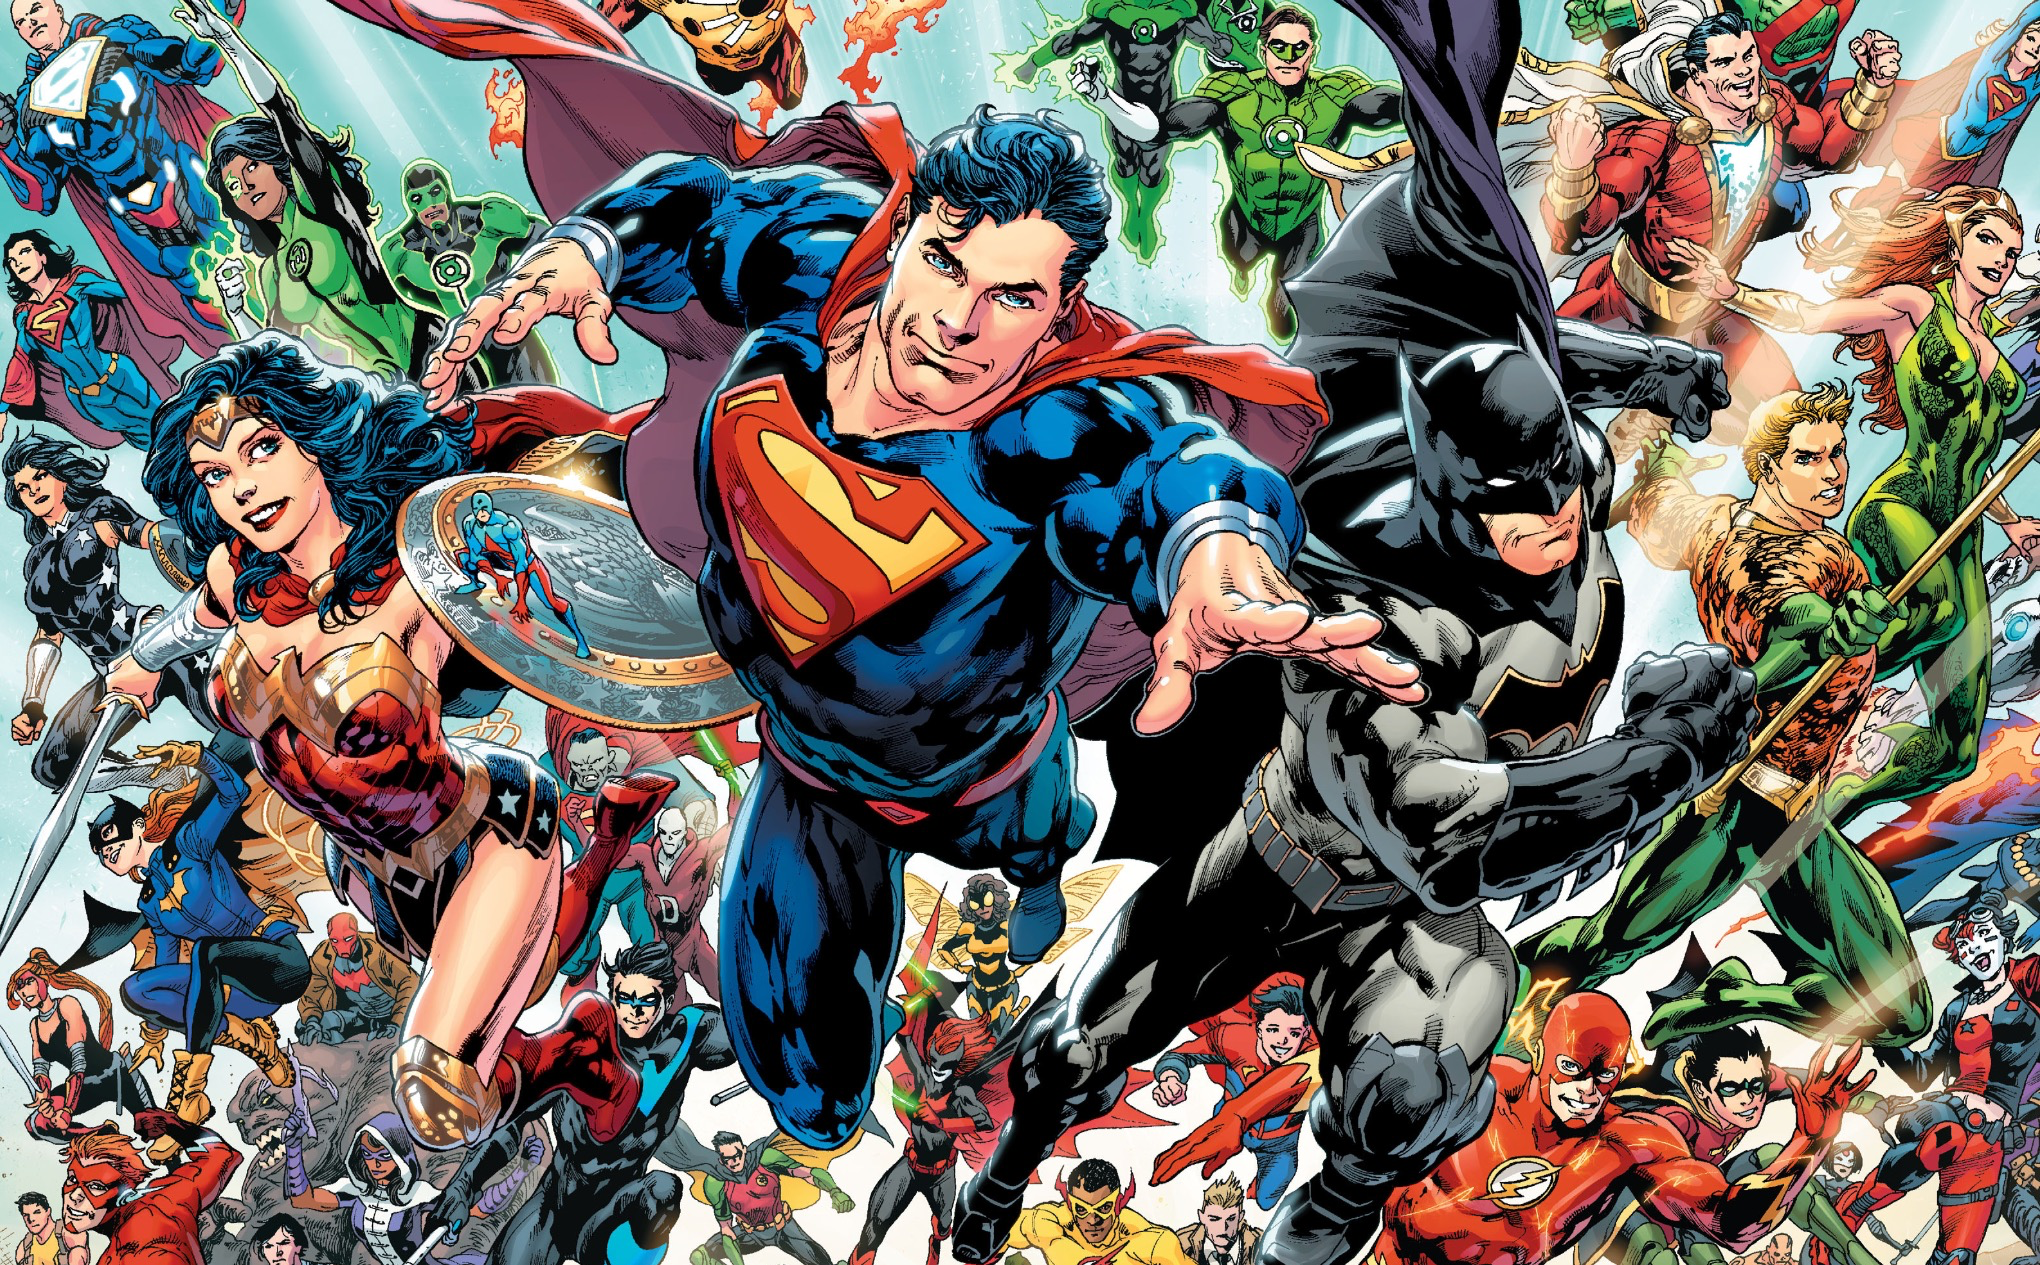 We Live Entertainments Favorite DC Heroes and Villains